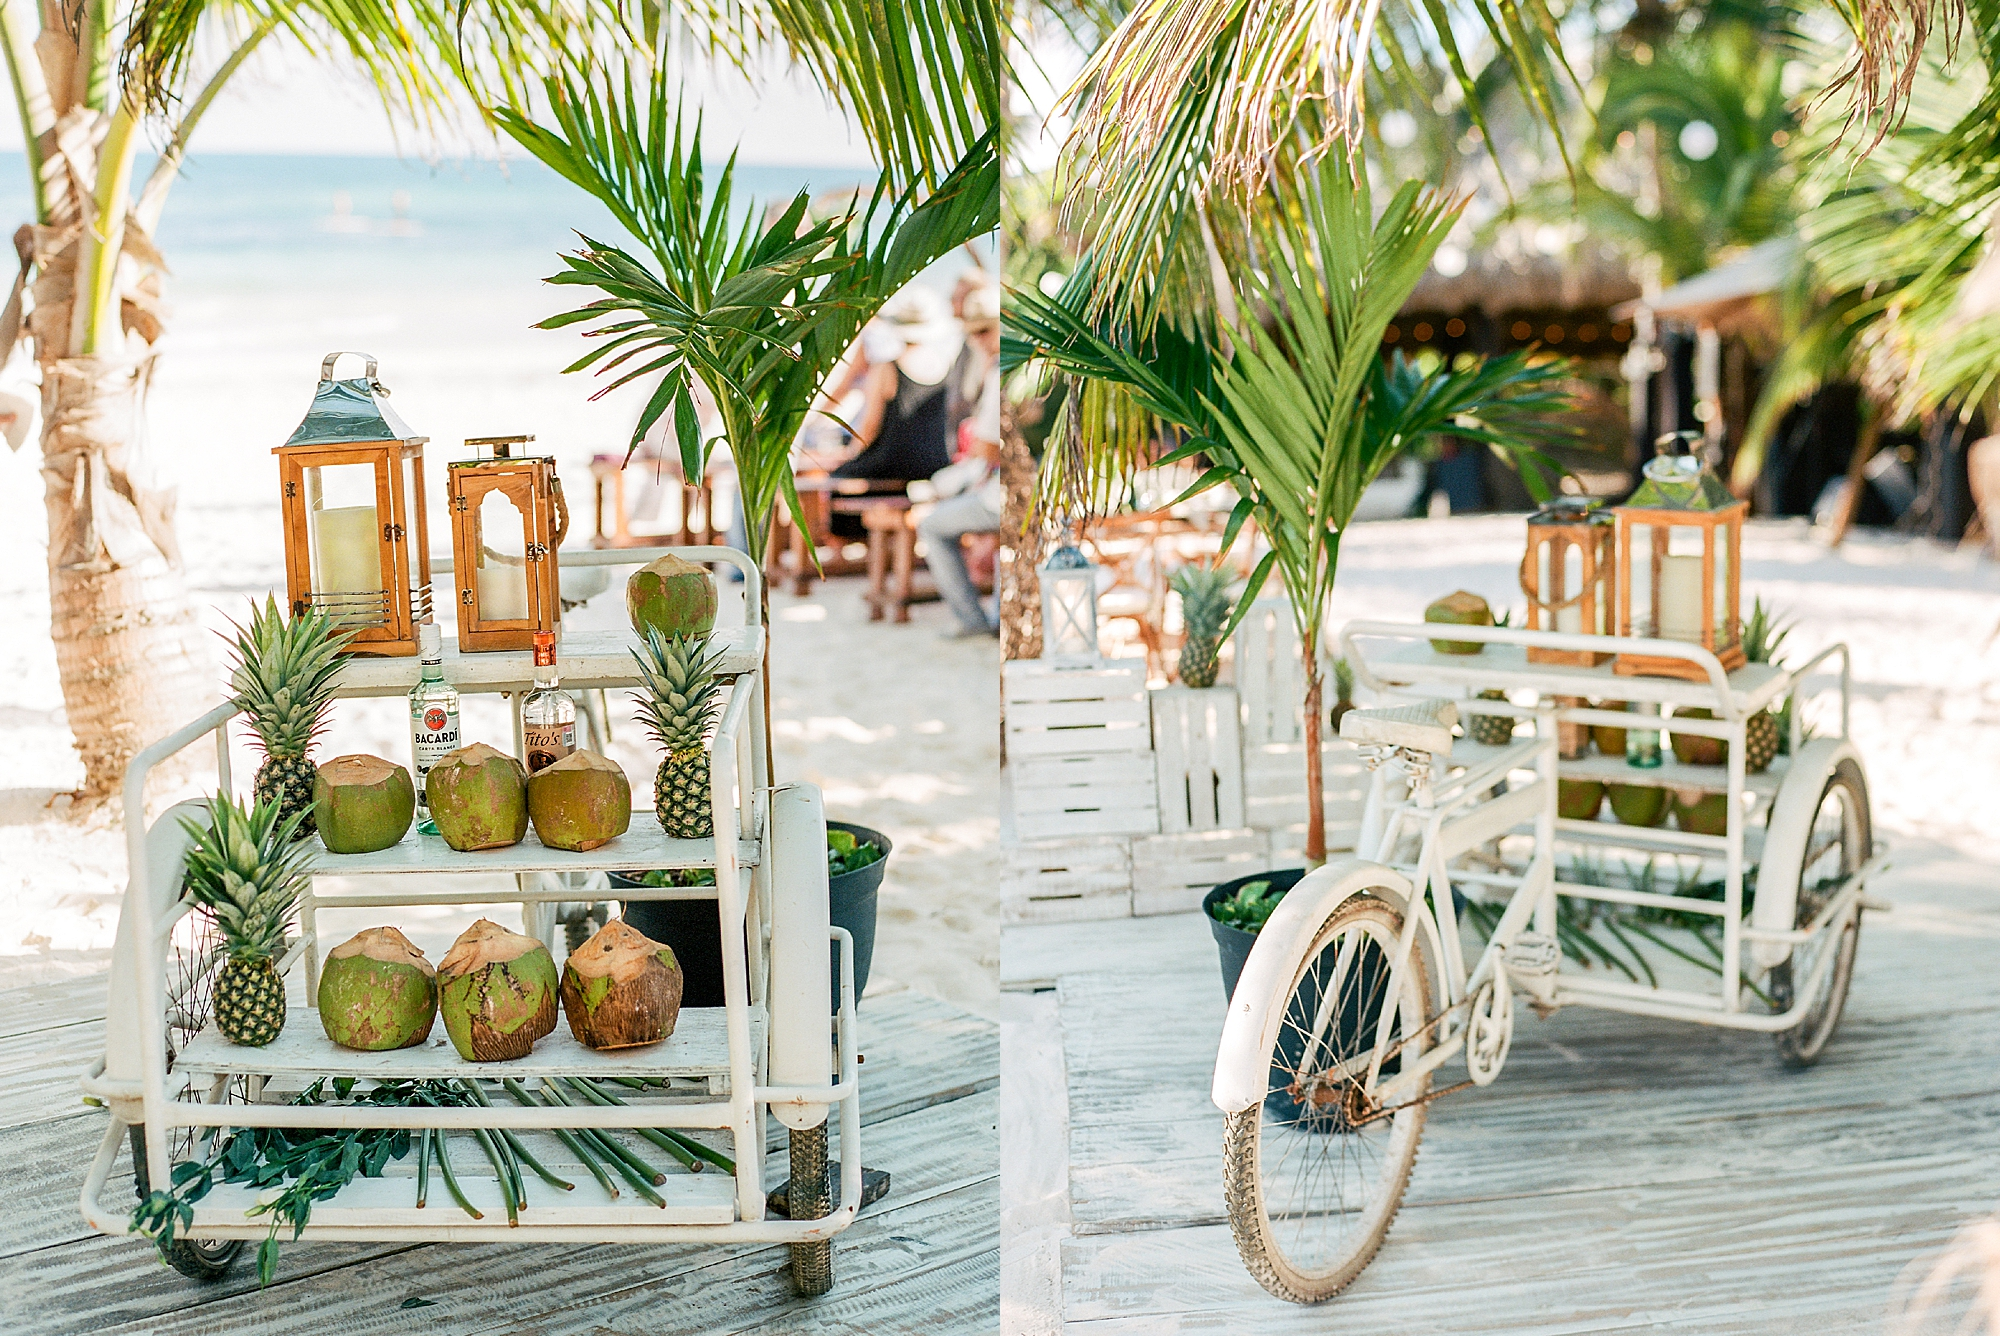 Stylish and Candid Destination Film Wedding Photography in Tulum Mexico by Magdalena Studios 0042